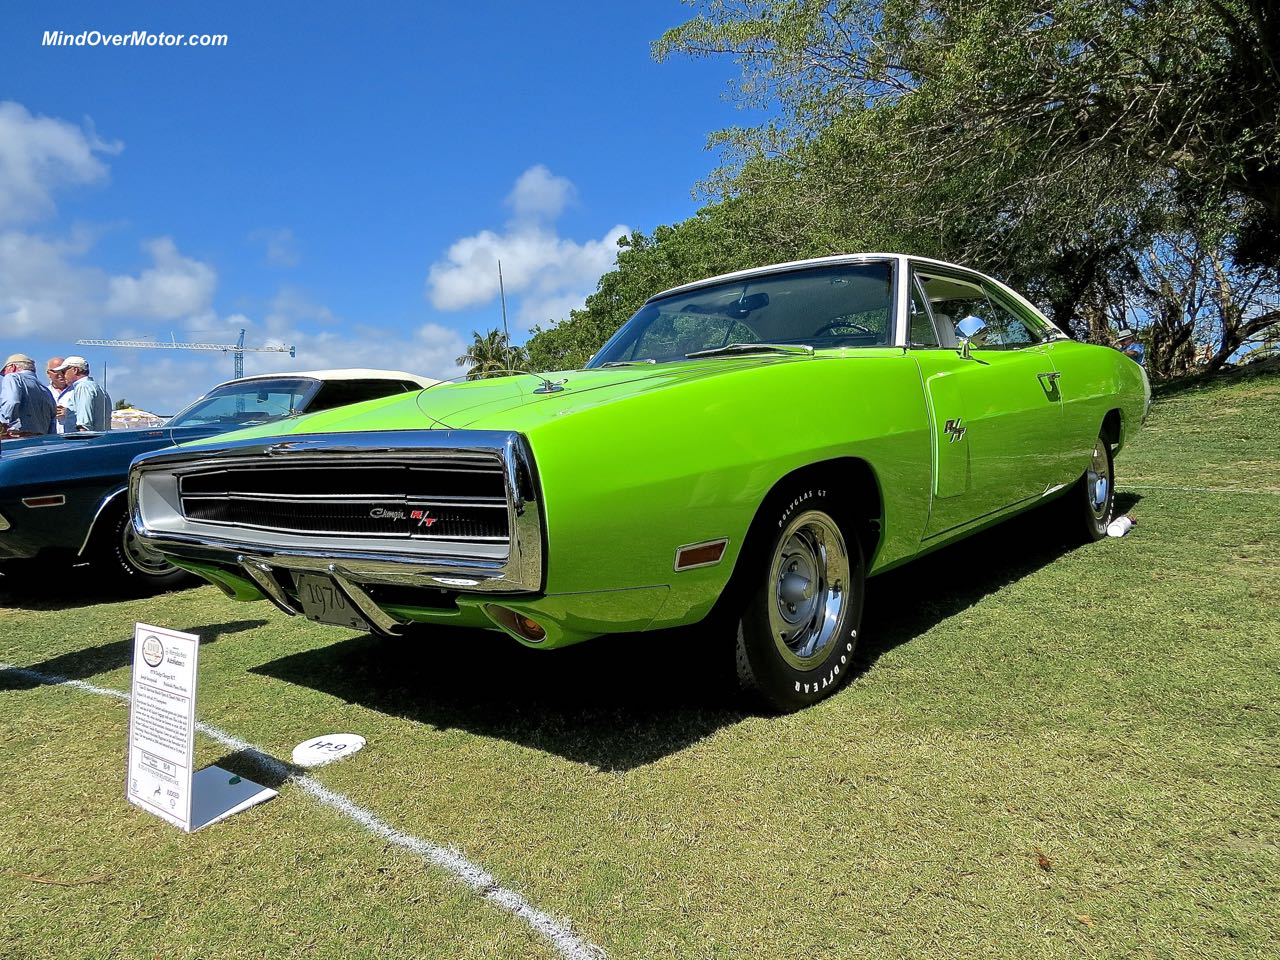 1970 Dodge Charger R:T Front